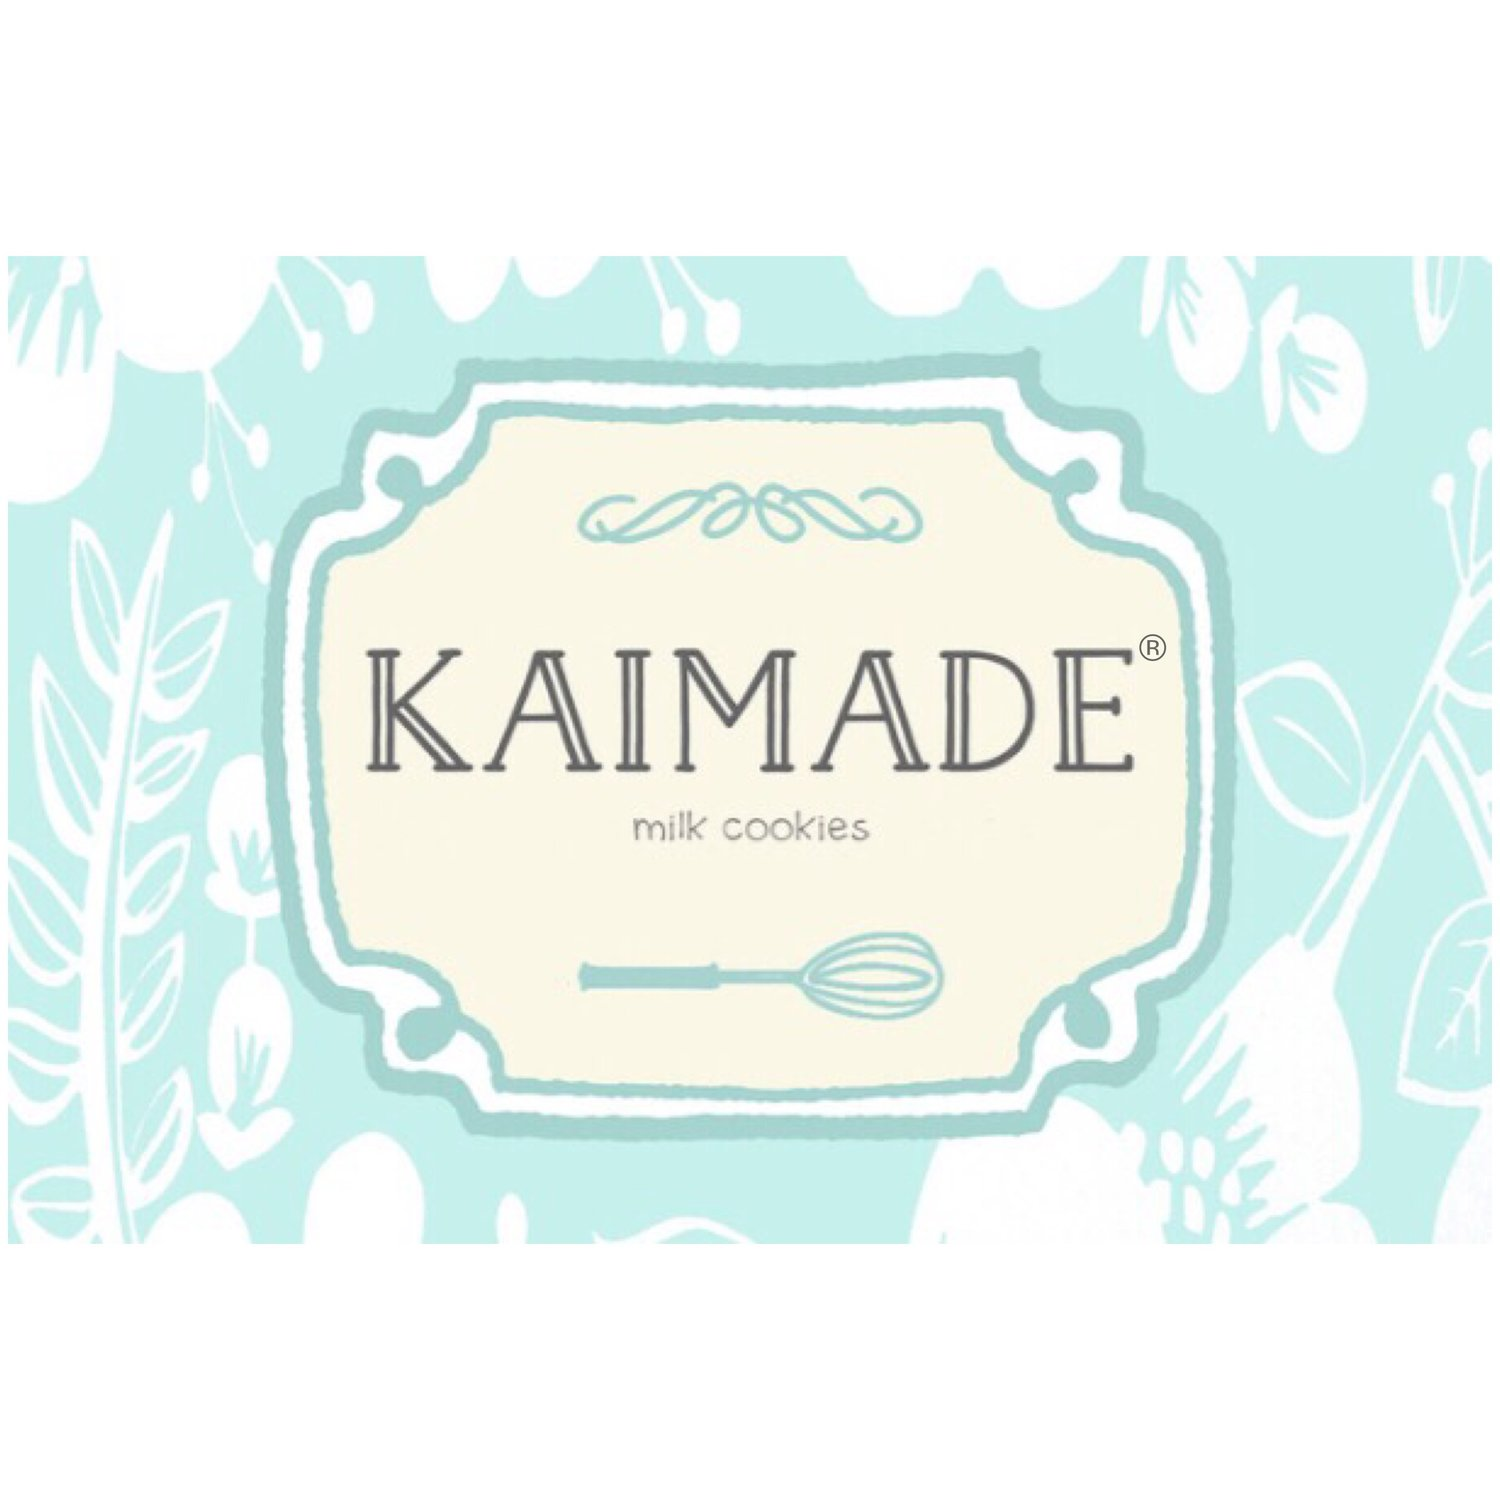 Kaimade® Milk Cookies